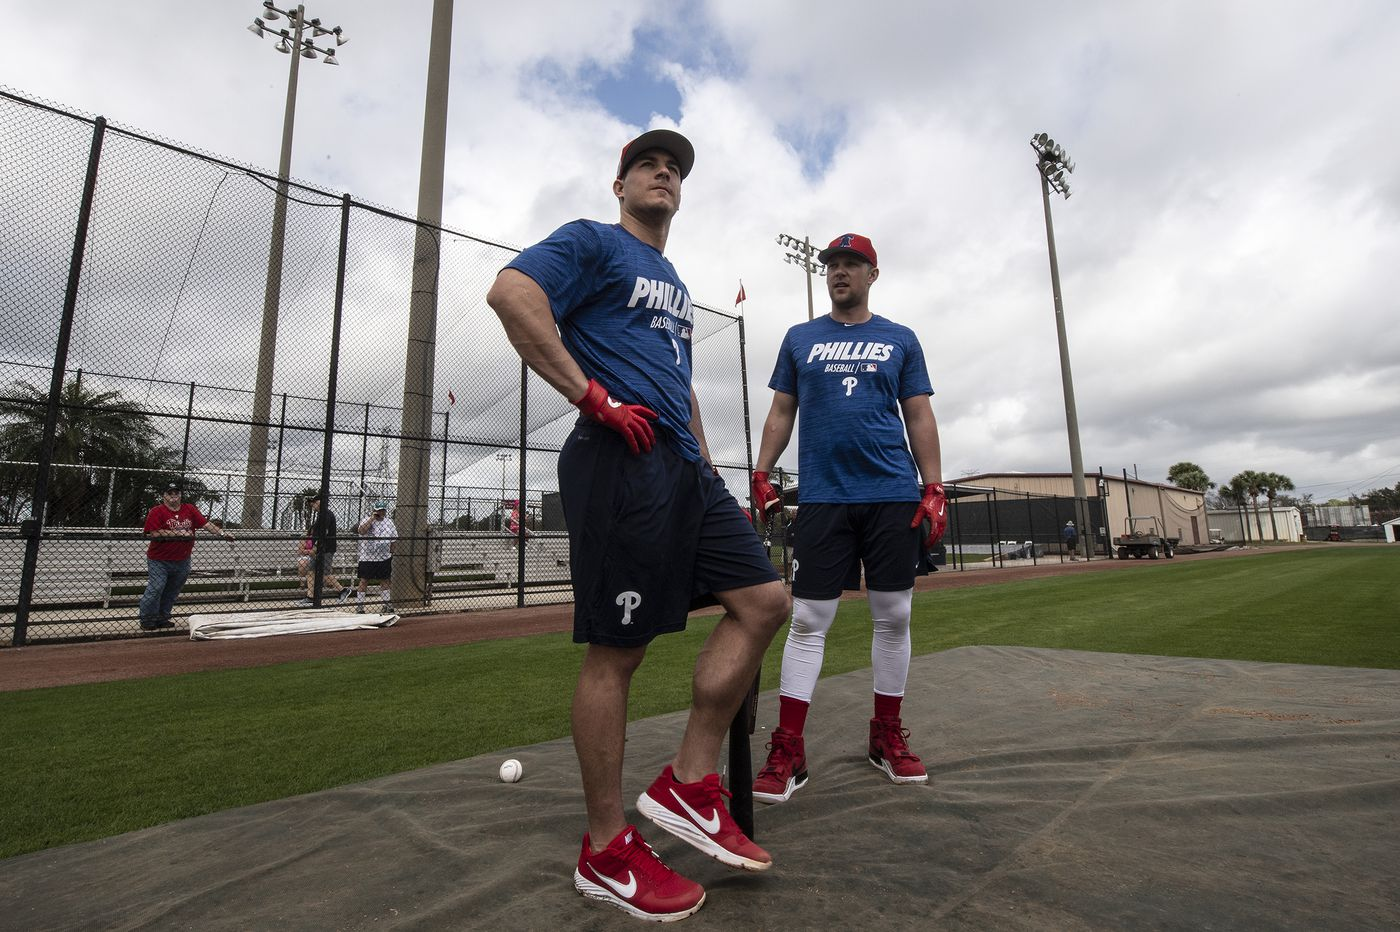 No talks yet, but J.T. Realmuto, Rhys Hoskins open to contract extensions with Phillies